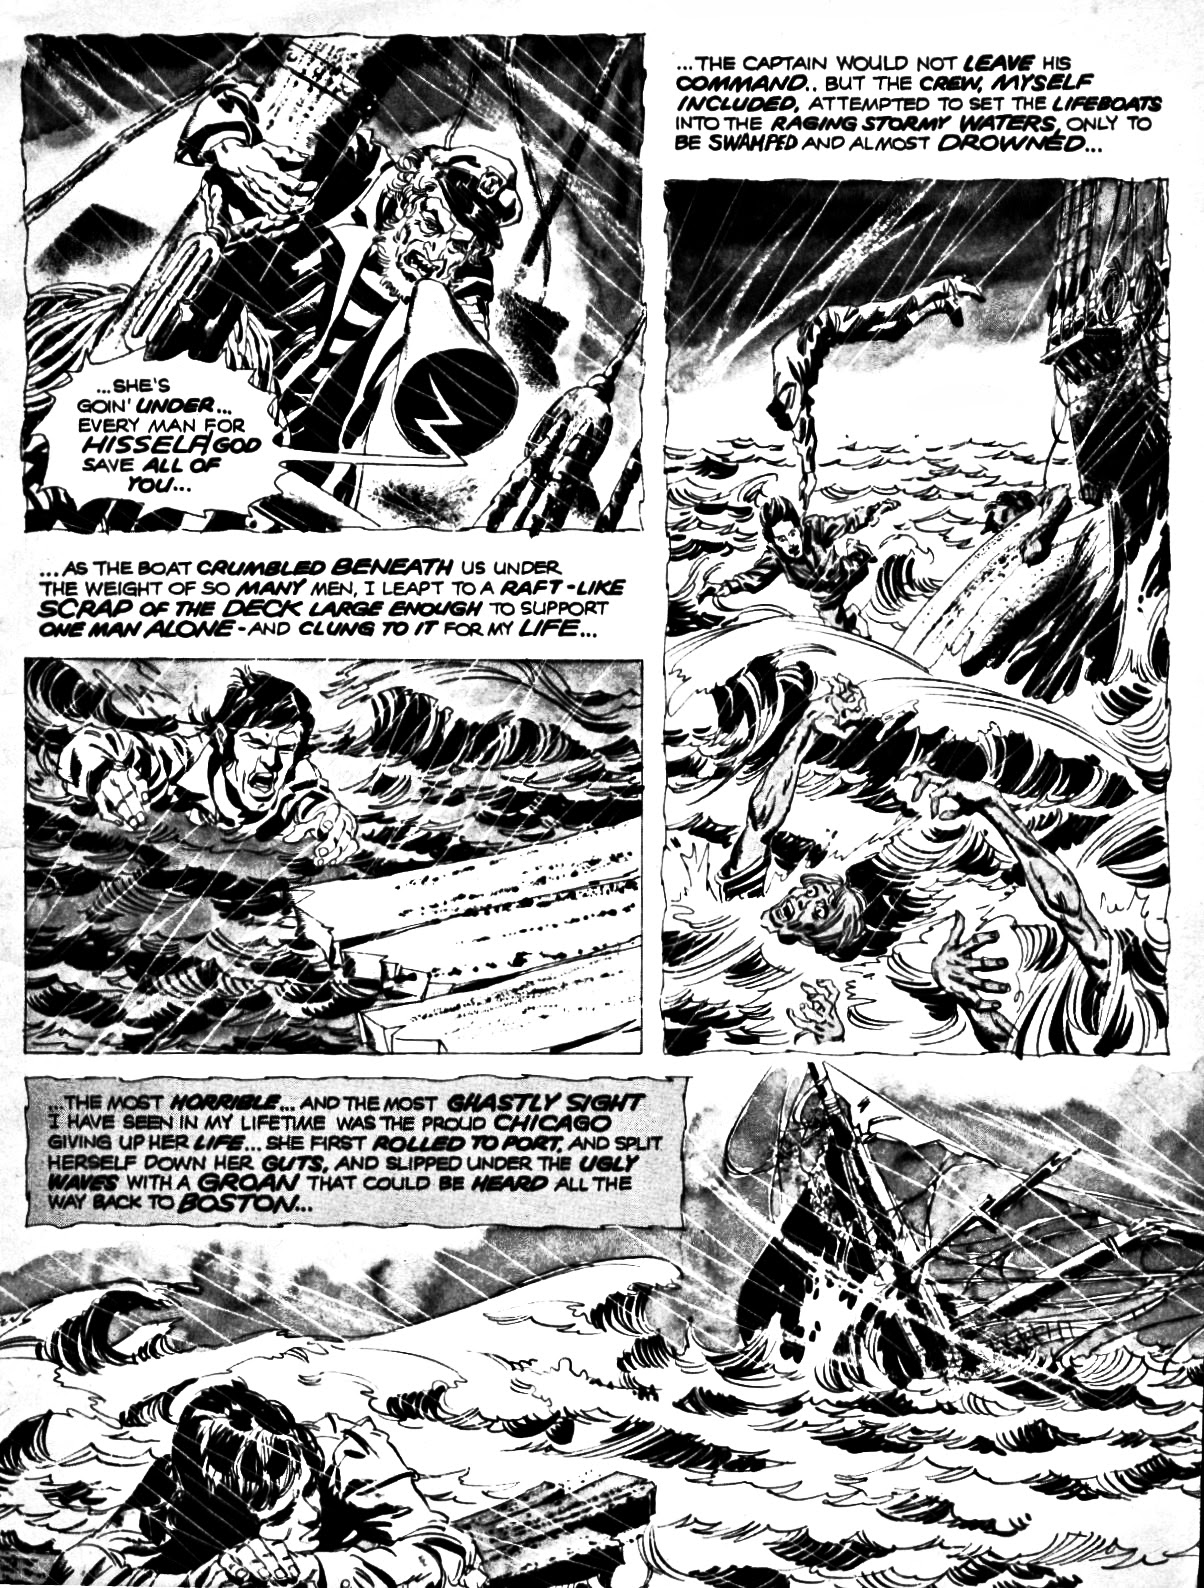 Scream (1973) issue 7 - Page 5